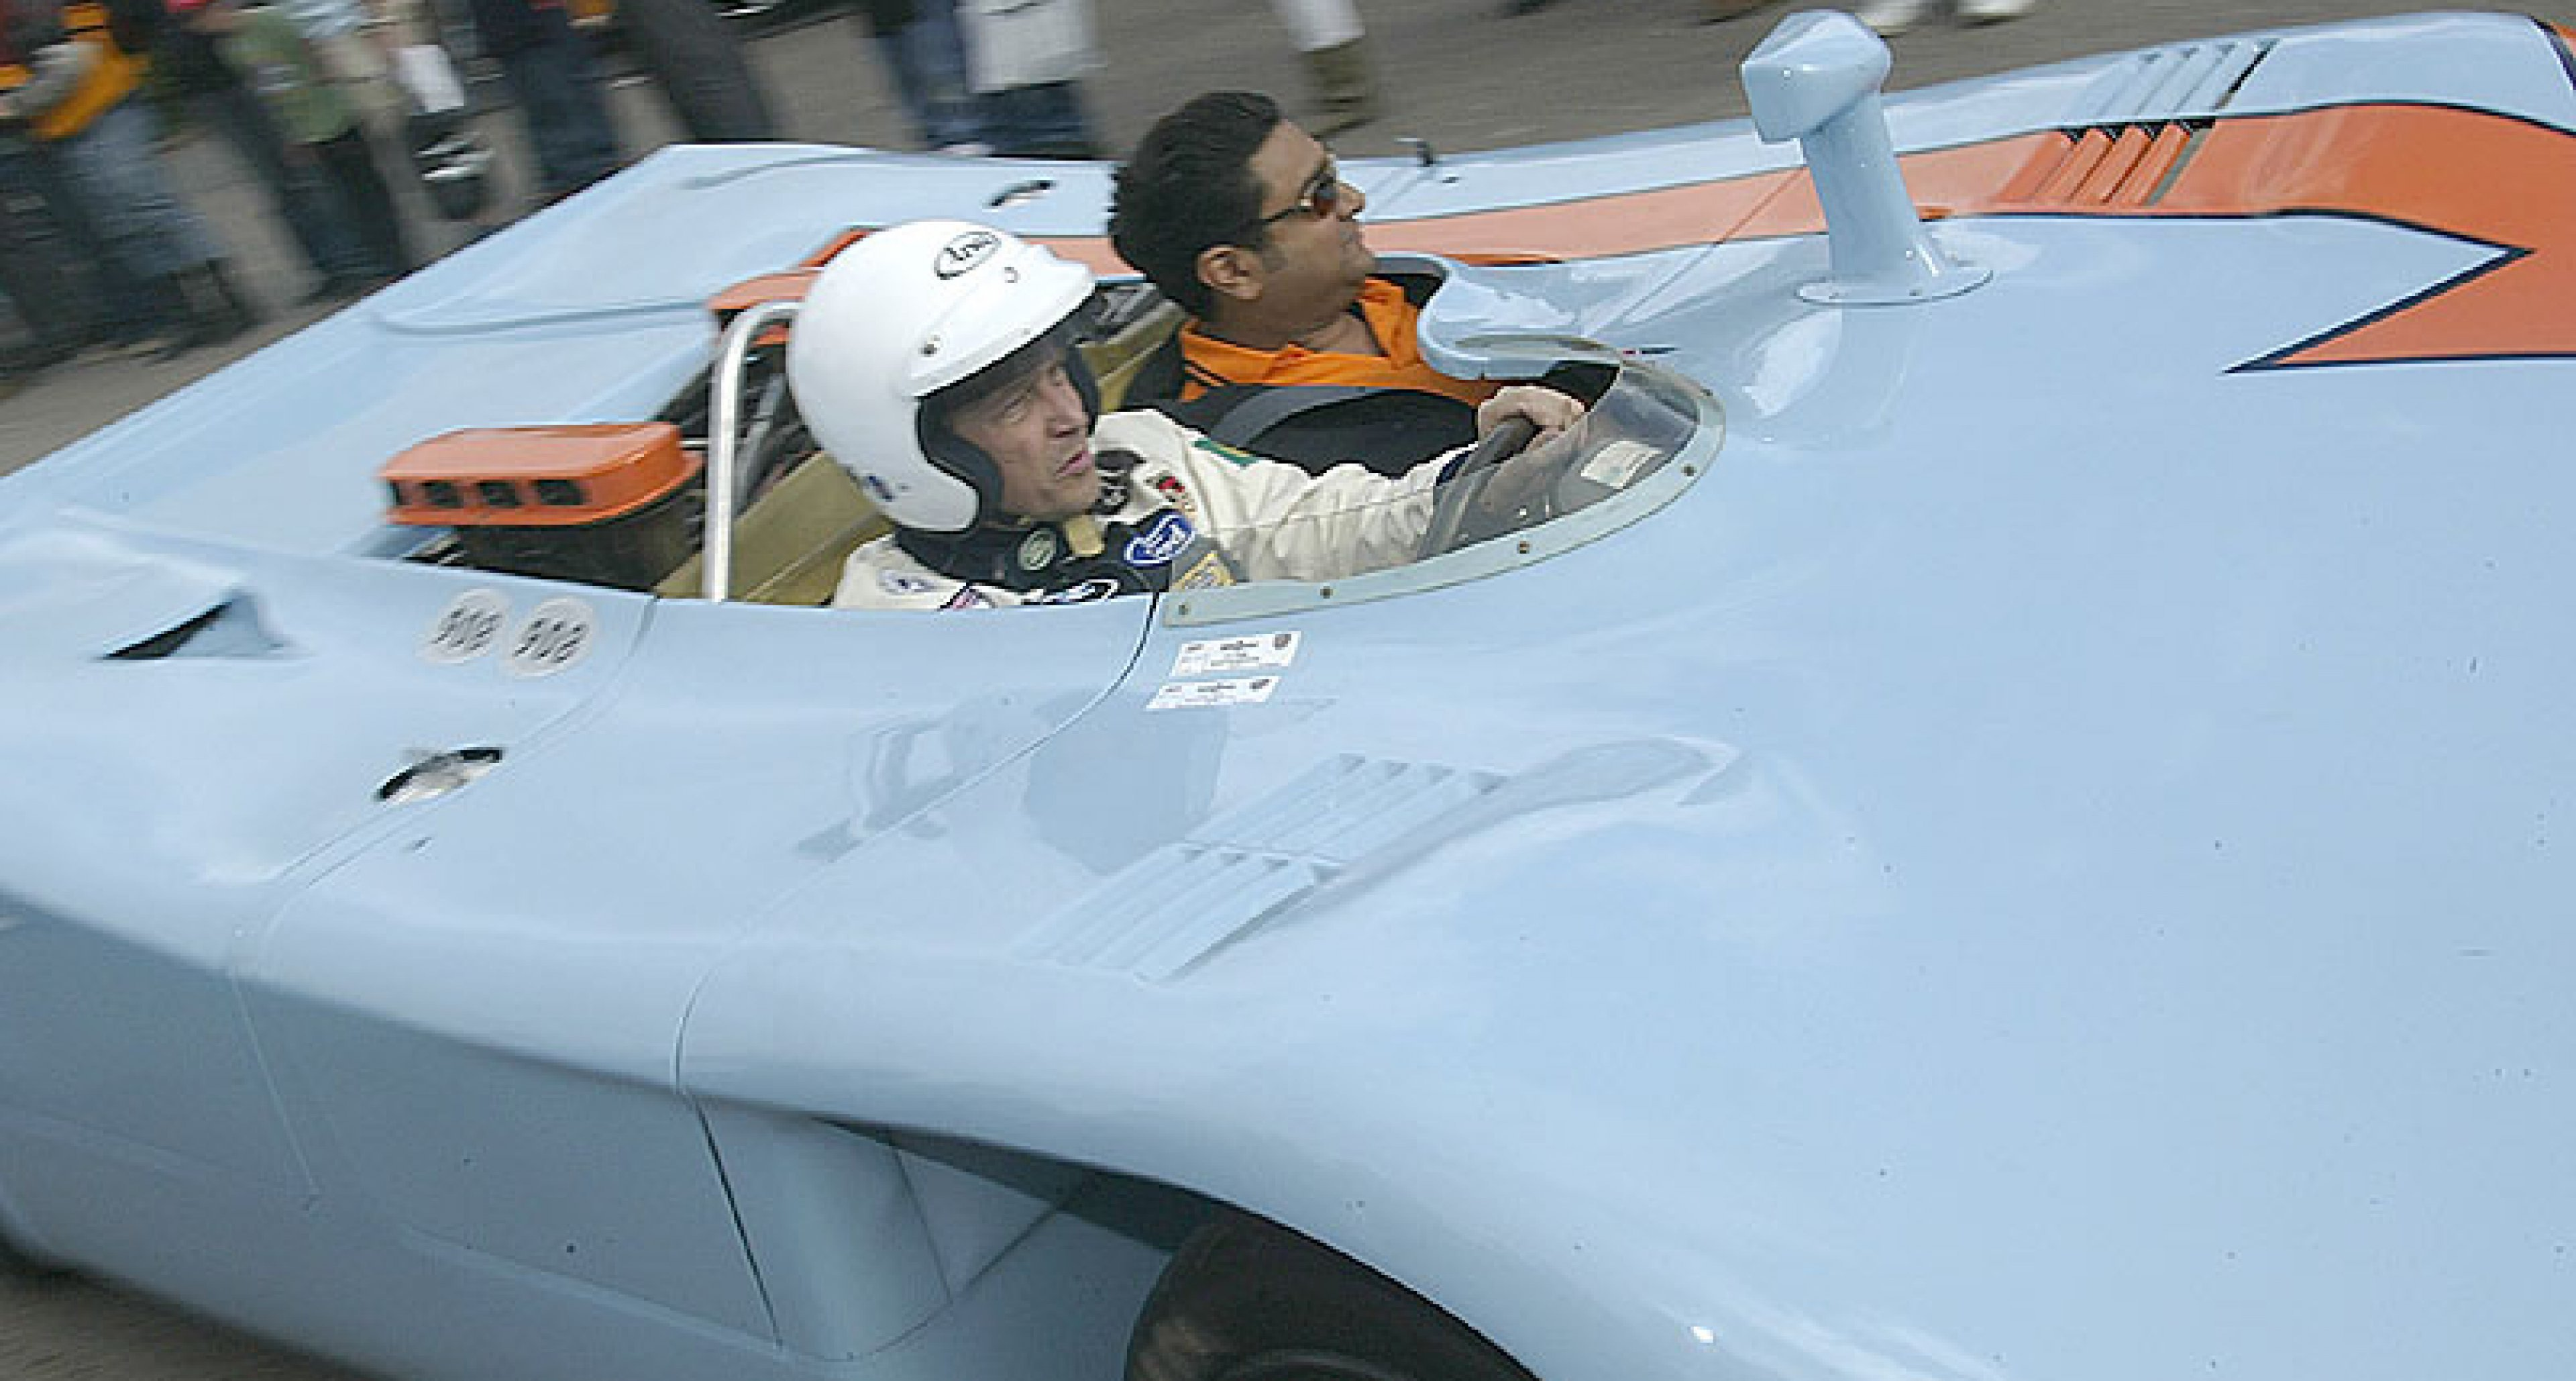 The 2008 Goodwood Festival of Speed